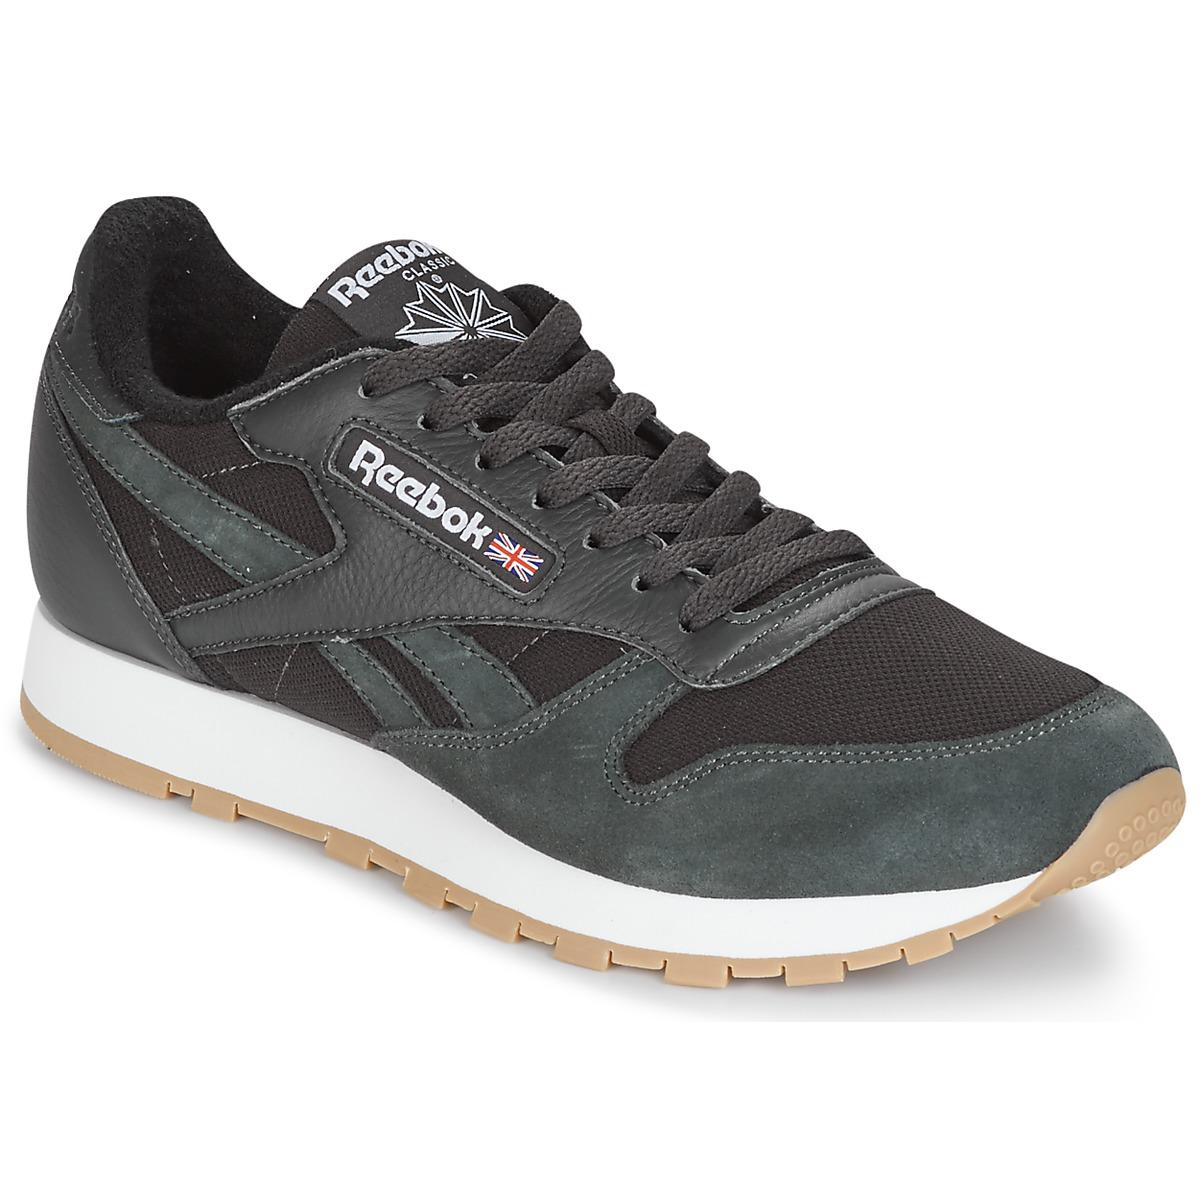 d5a6eed30fe8 Reebok - Classic Leather Essentiel Men s Shoes (trainers) In Black for Men  - Lyst. View fullscreen